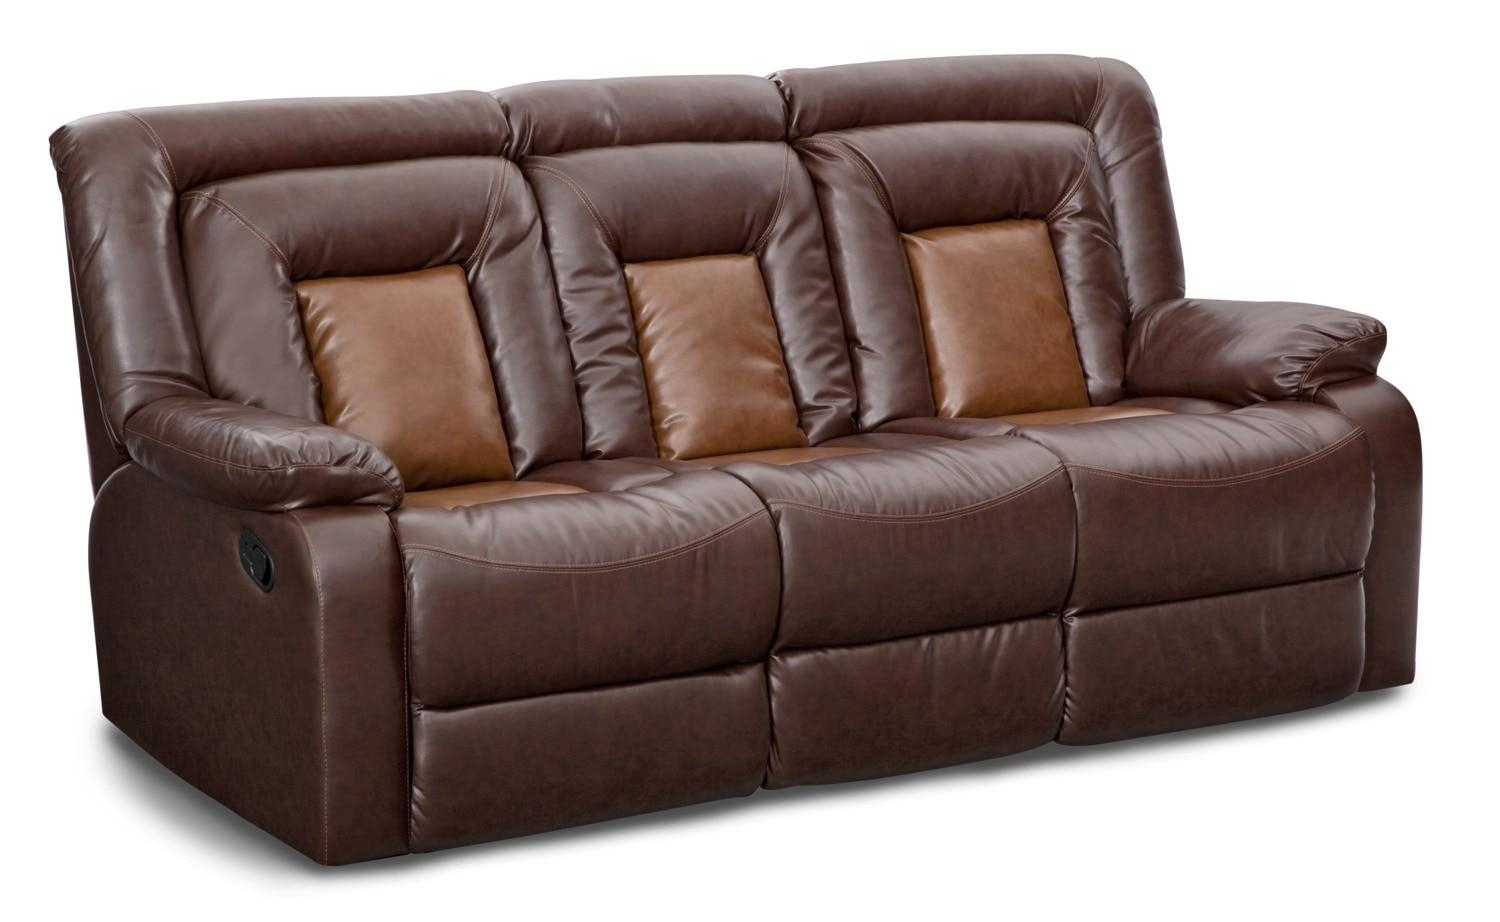 Sofas & Couches | Living Room Seating | Value City Furniture With Regard To Sofas (Image 13 of 20)